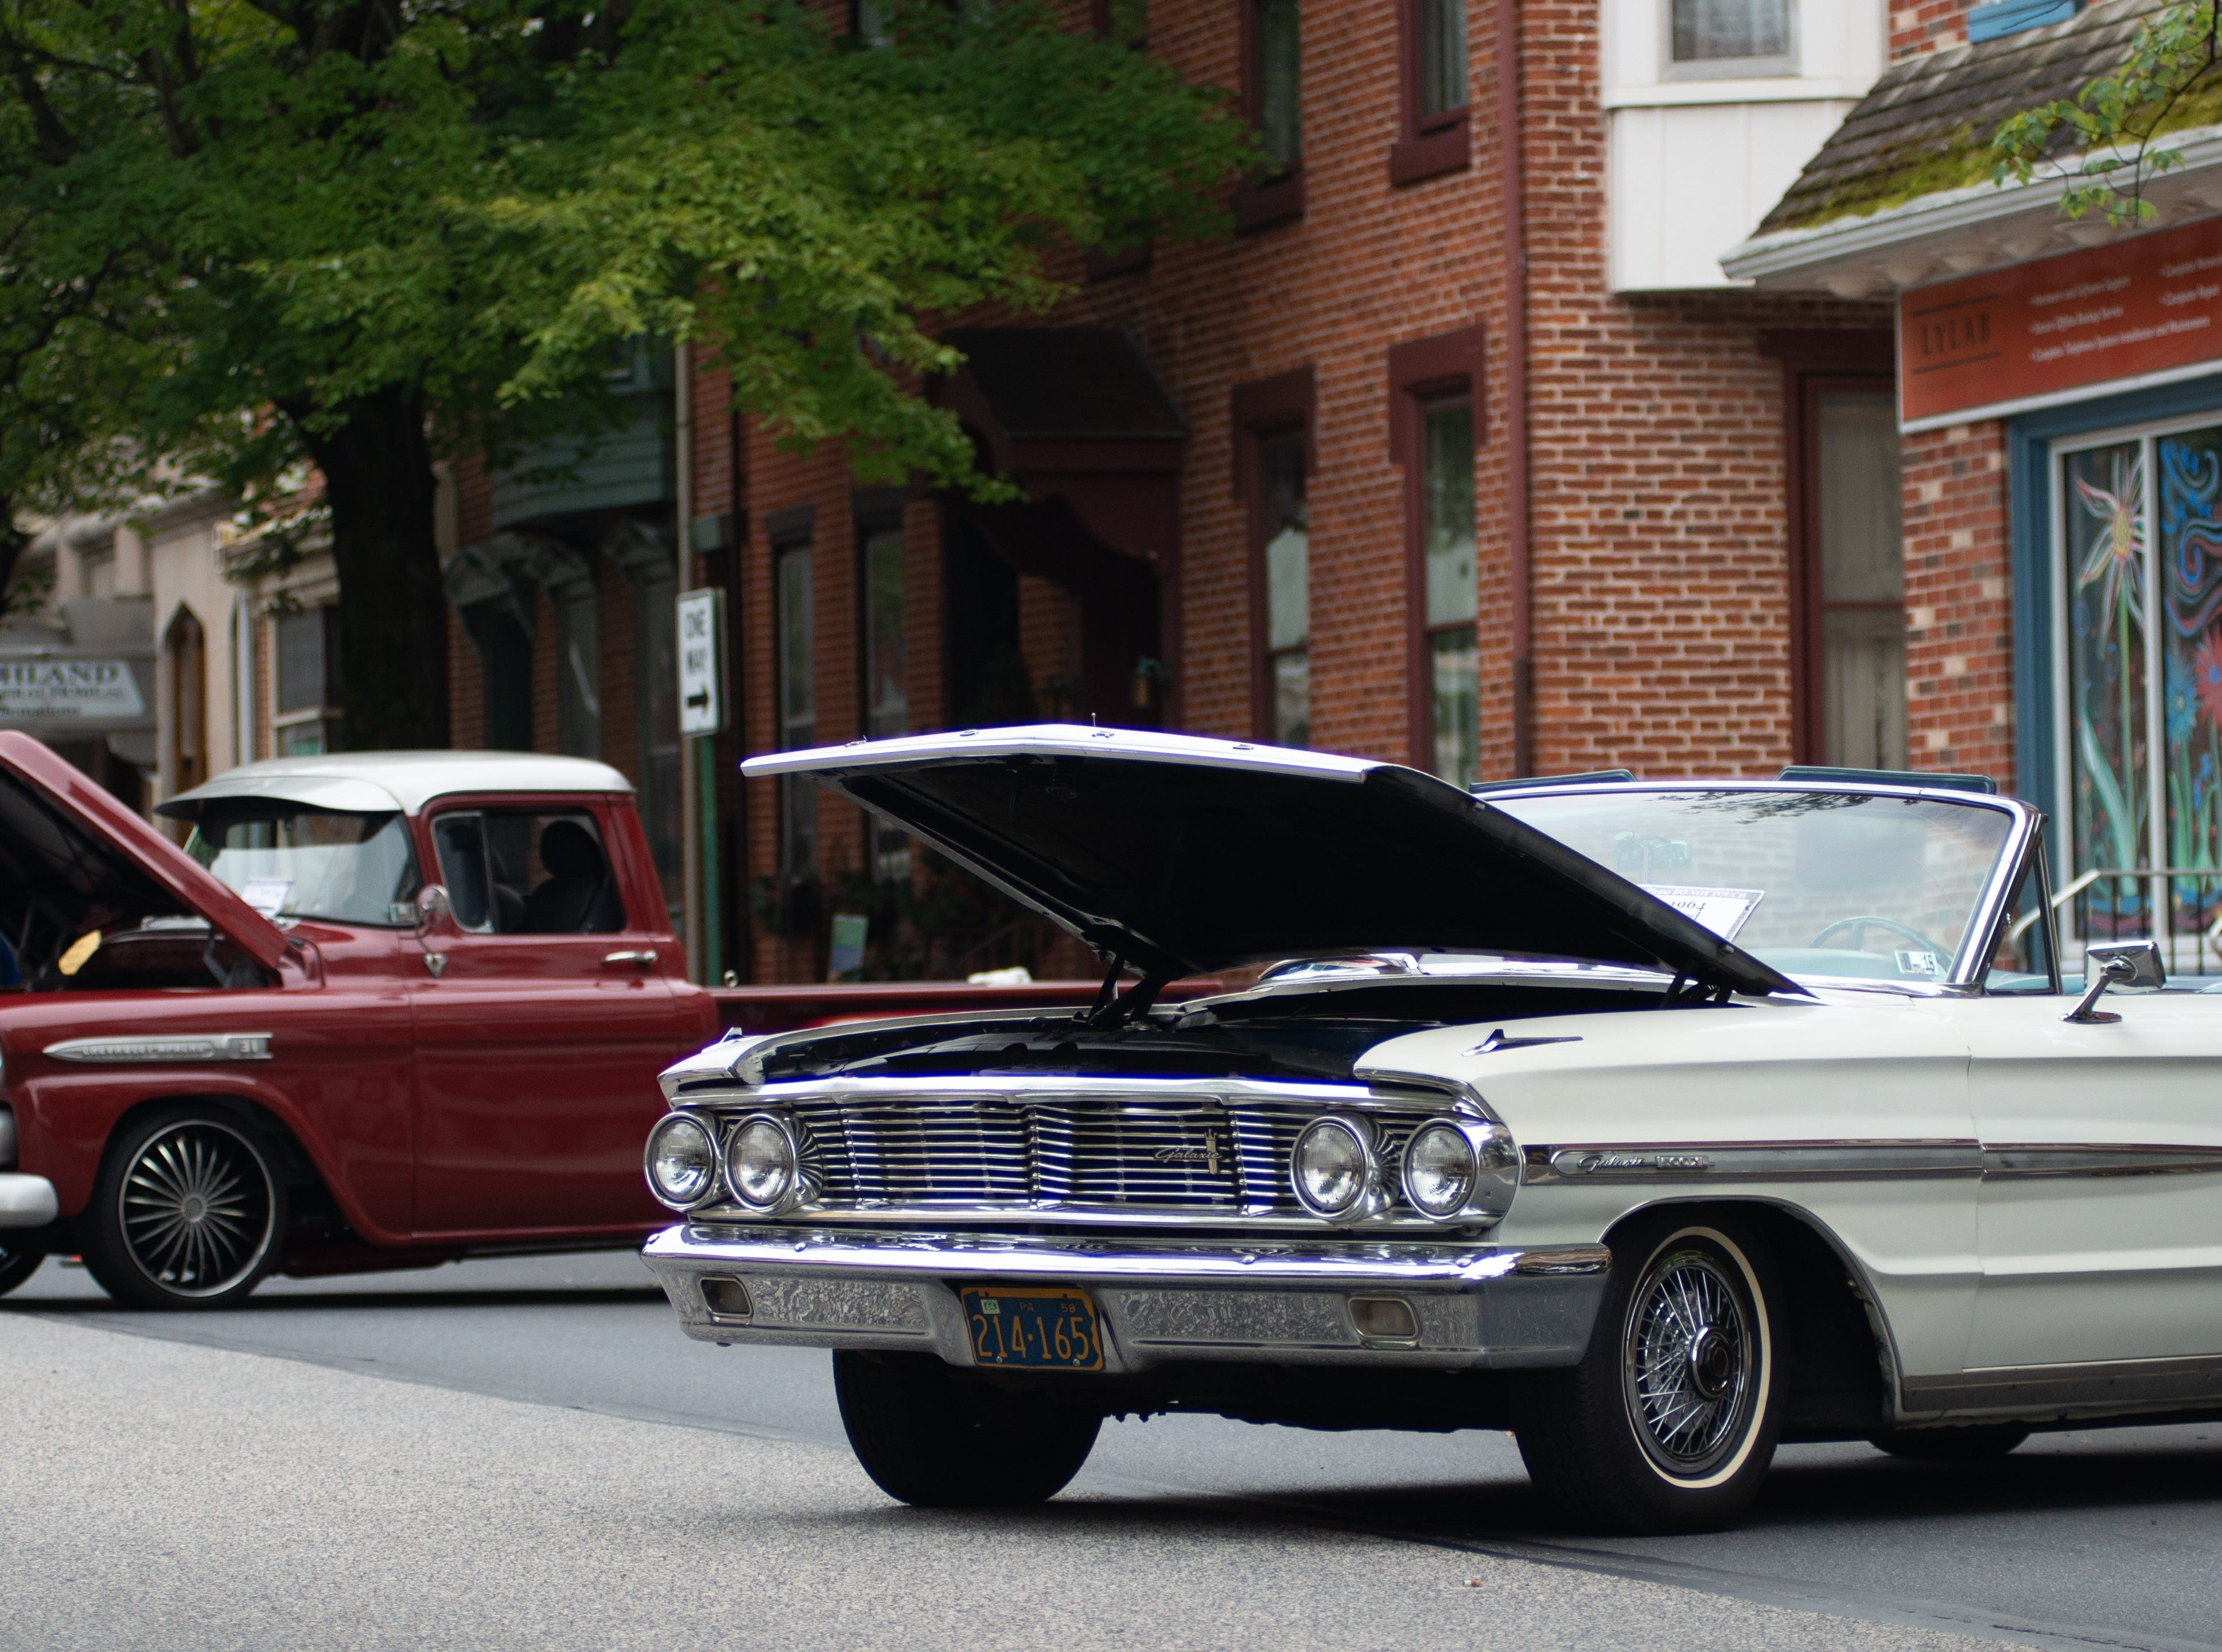 On Sunday, Aug. 26, 2018, Cumberland Street in downtown Lebanon was shut down for the Community of Lebanon Association Car & Motorcycle Show. The event had been initially scheduled for Aug. 19. Numerous vehicles old and new were on display.